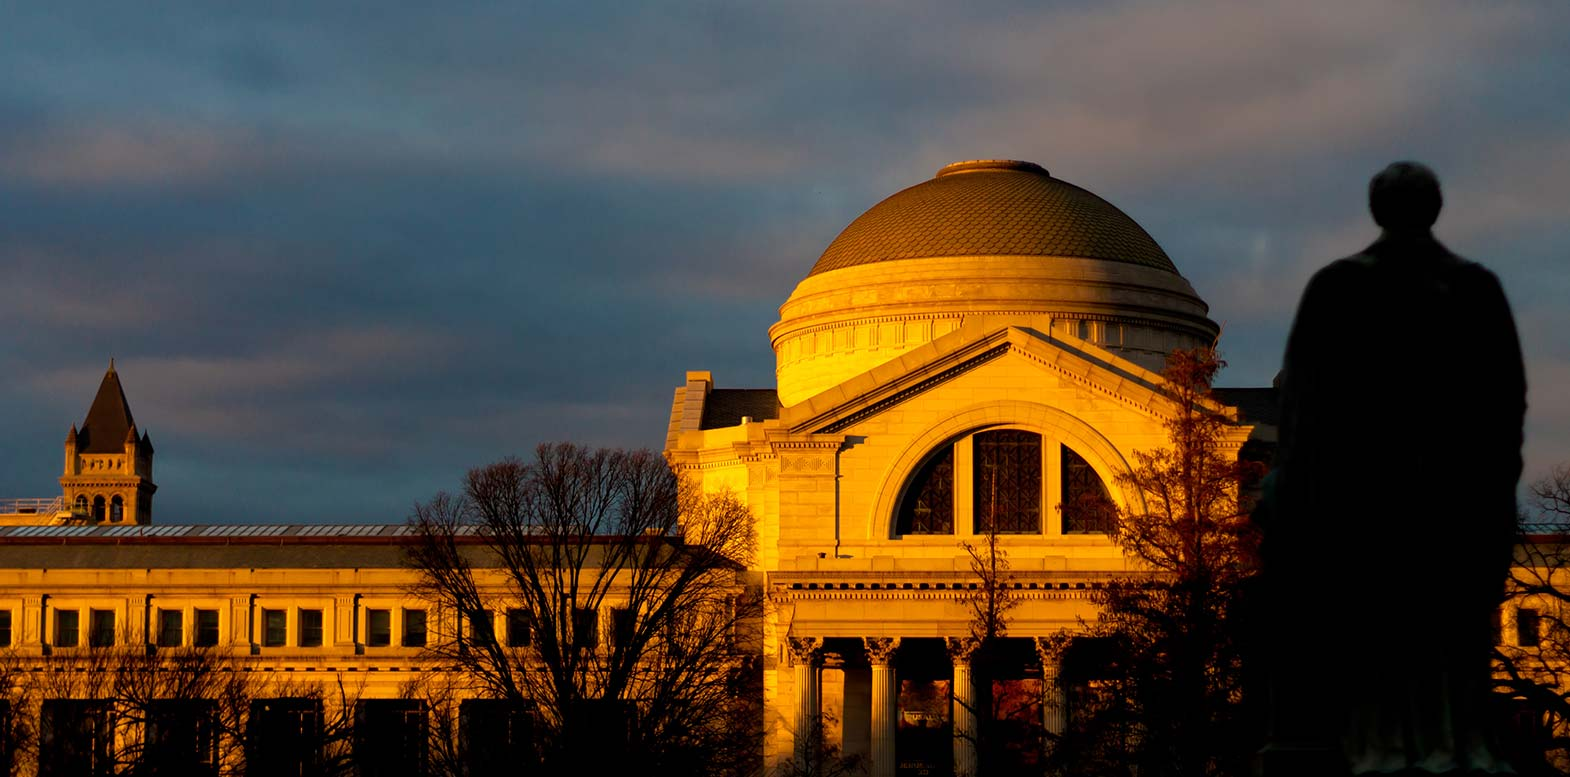 Smithsonian Museums: Art, History and American Culture